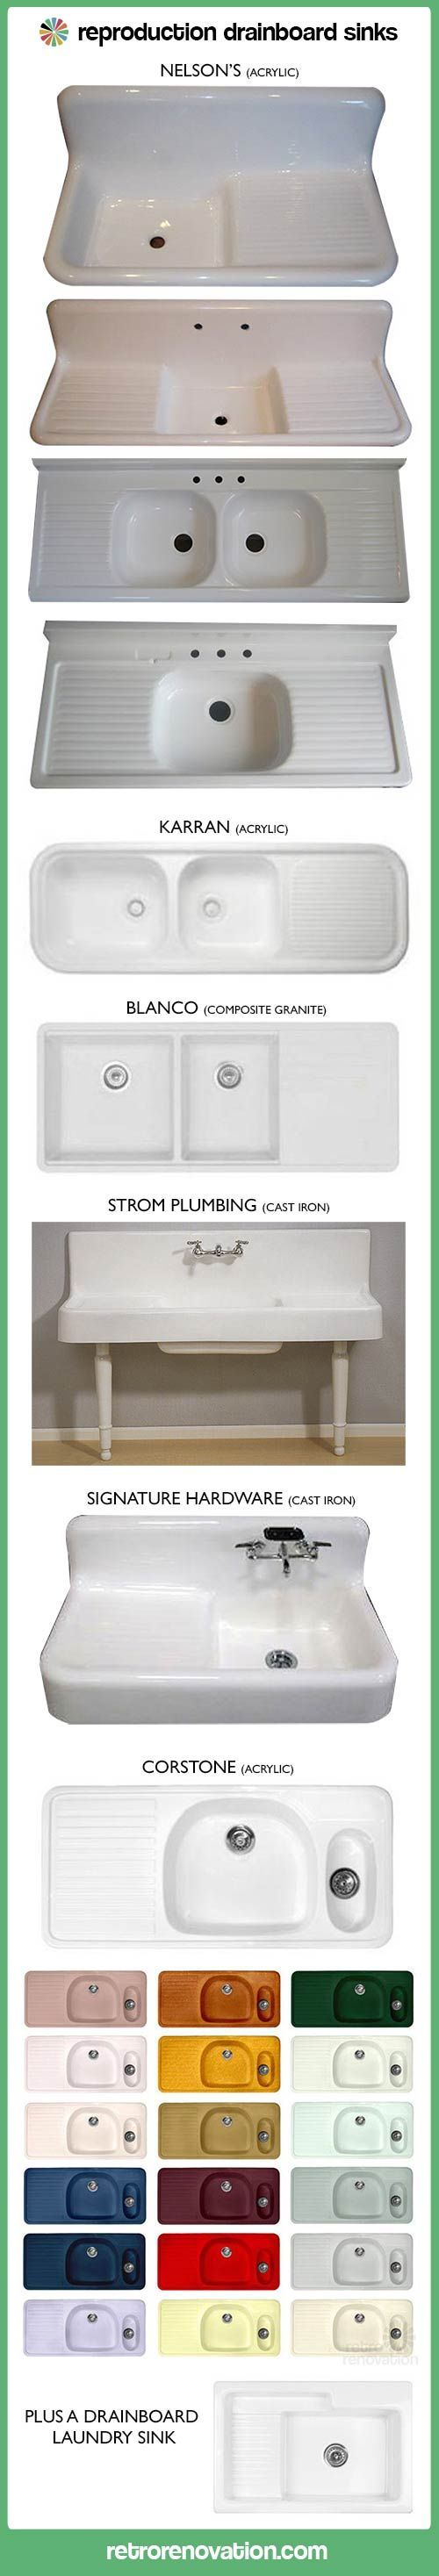 Best 20+ Vintage sink ideas on Pinterest | Vintage kitchen sink ...